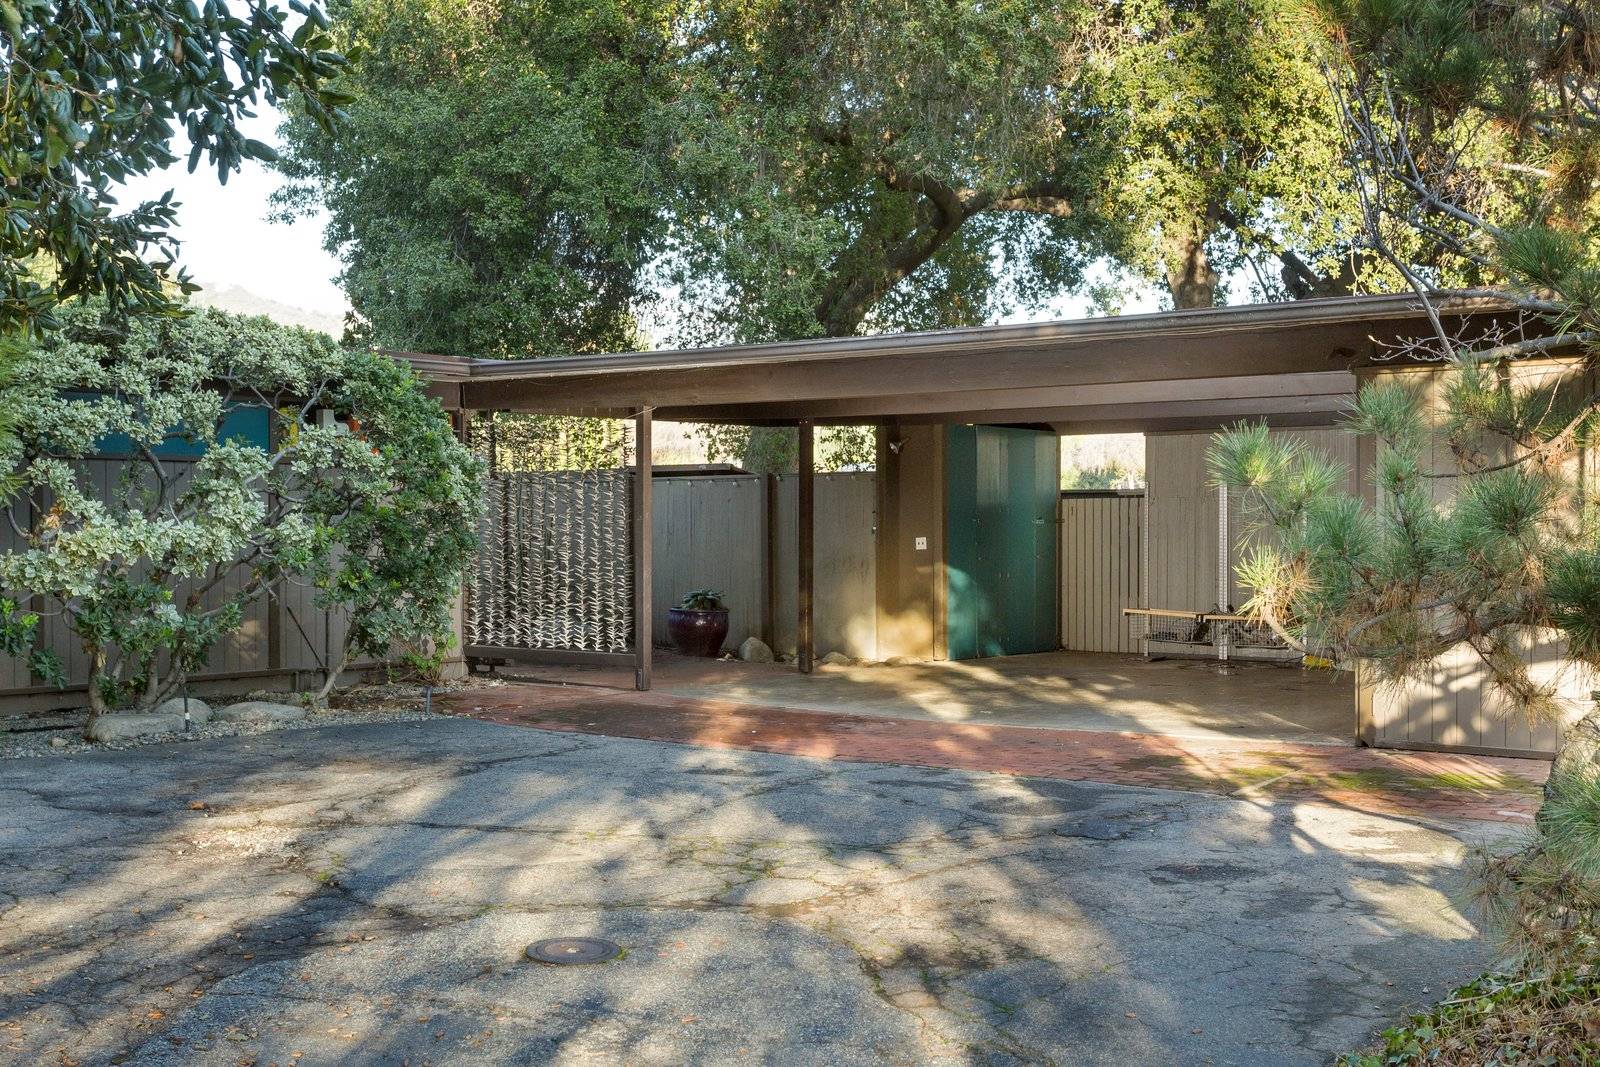 Set back from the street, the home provides privacy and seclusion. At the entrance, a carport leads to a brick-paved walkway that stretches to the front door. Snag This Midcentury Stunner in Southern California For $799K - Photo 2 of 11